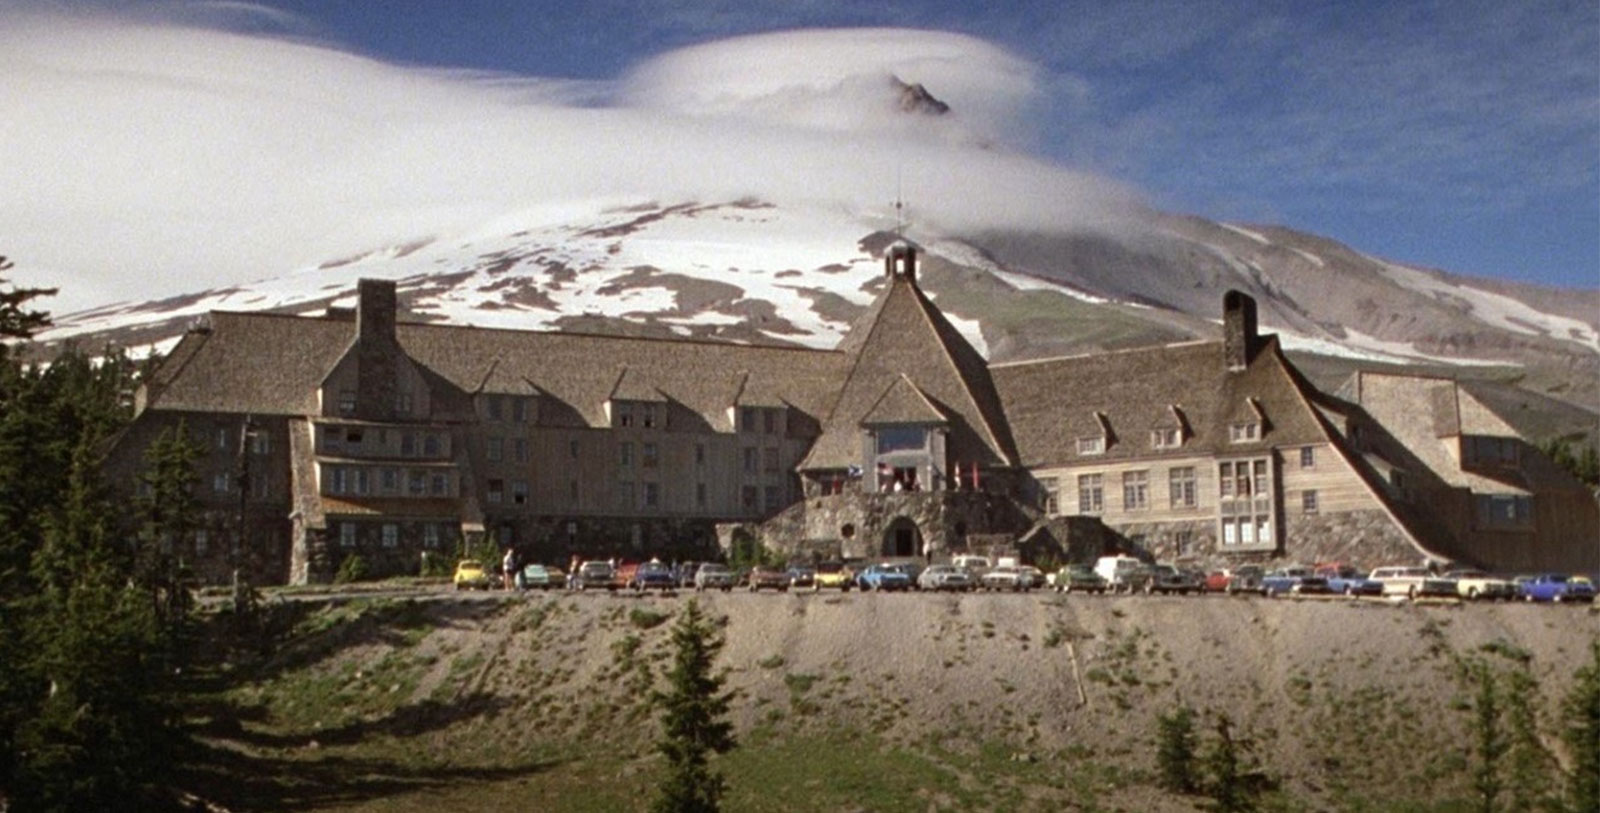 Exterior of the Timberline Lodge as it appeared in 1980 film The Shining, Timberline Lodge, Oregon